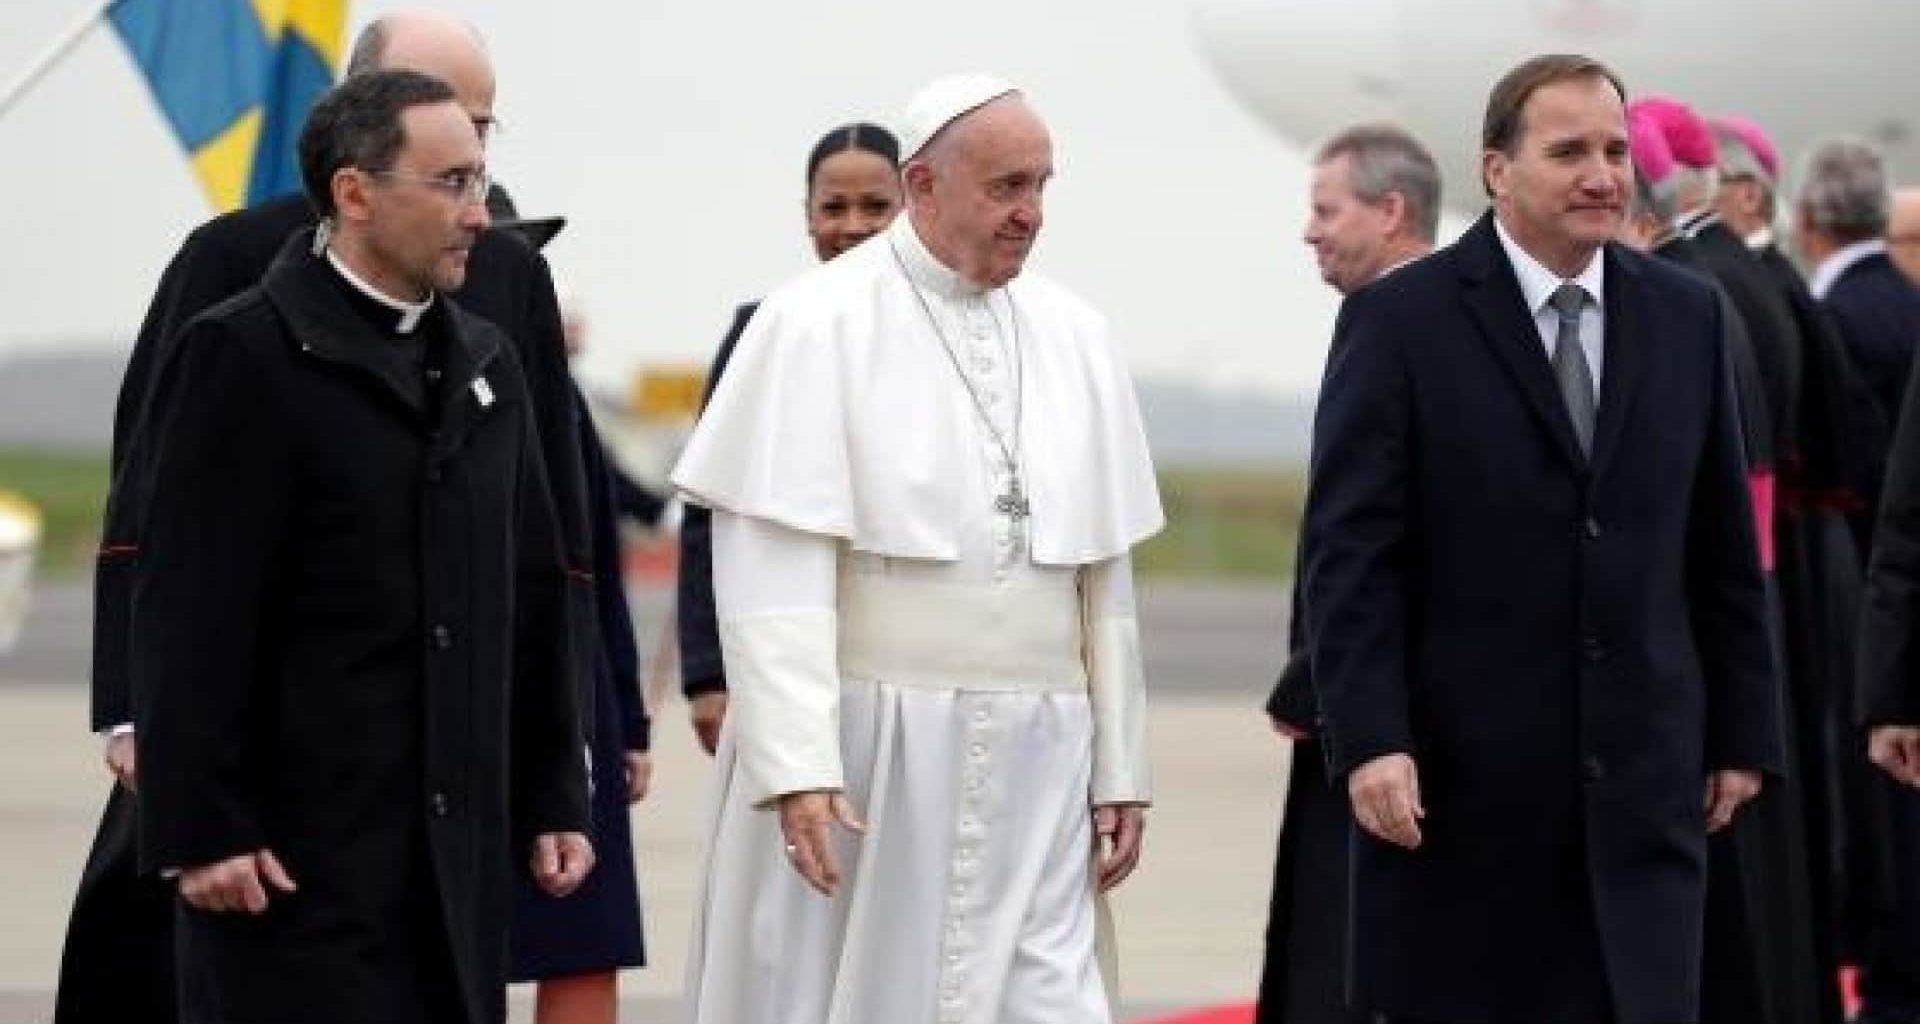 Pope Heads to Sweden to Commemorate Martin Luther